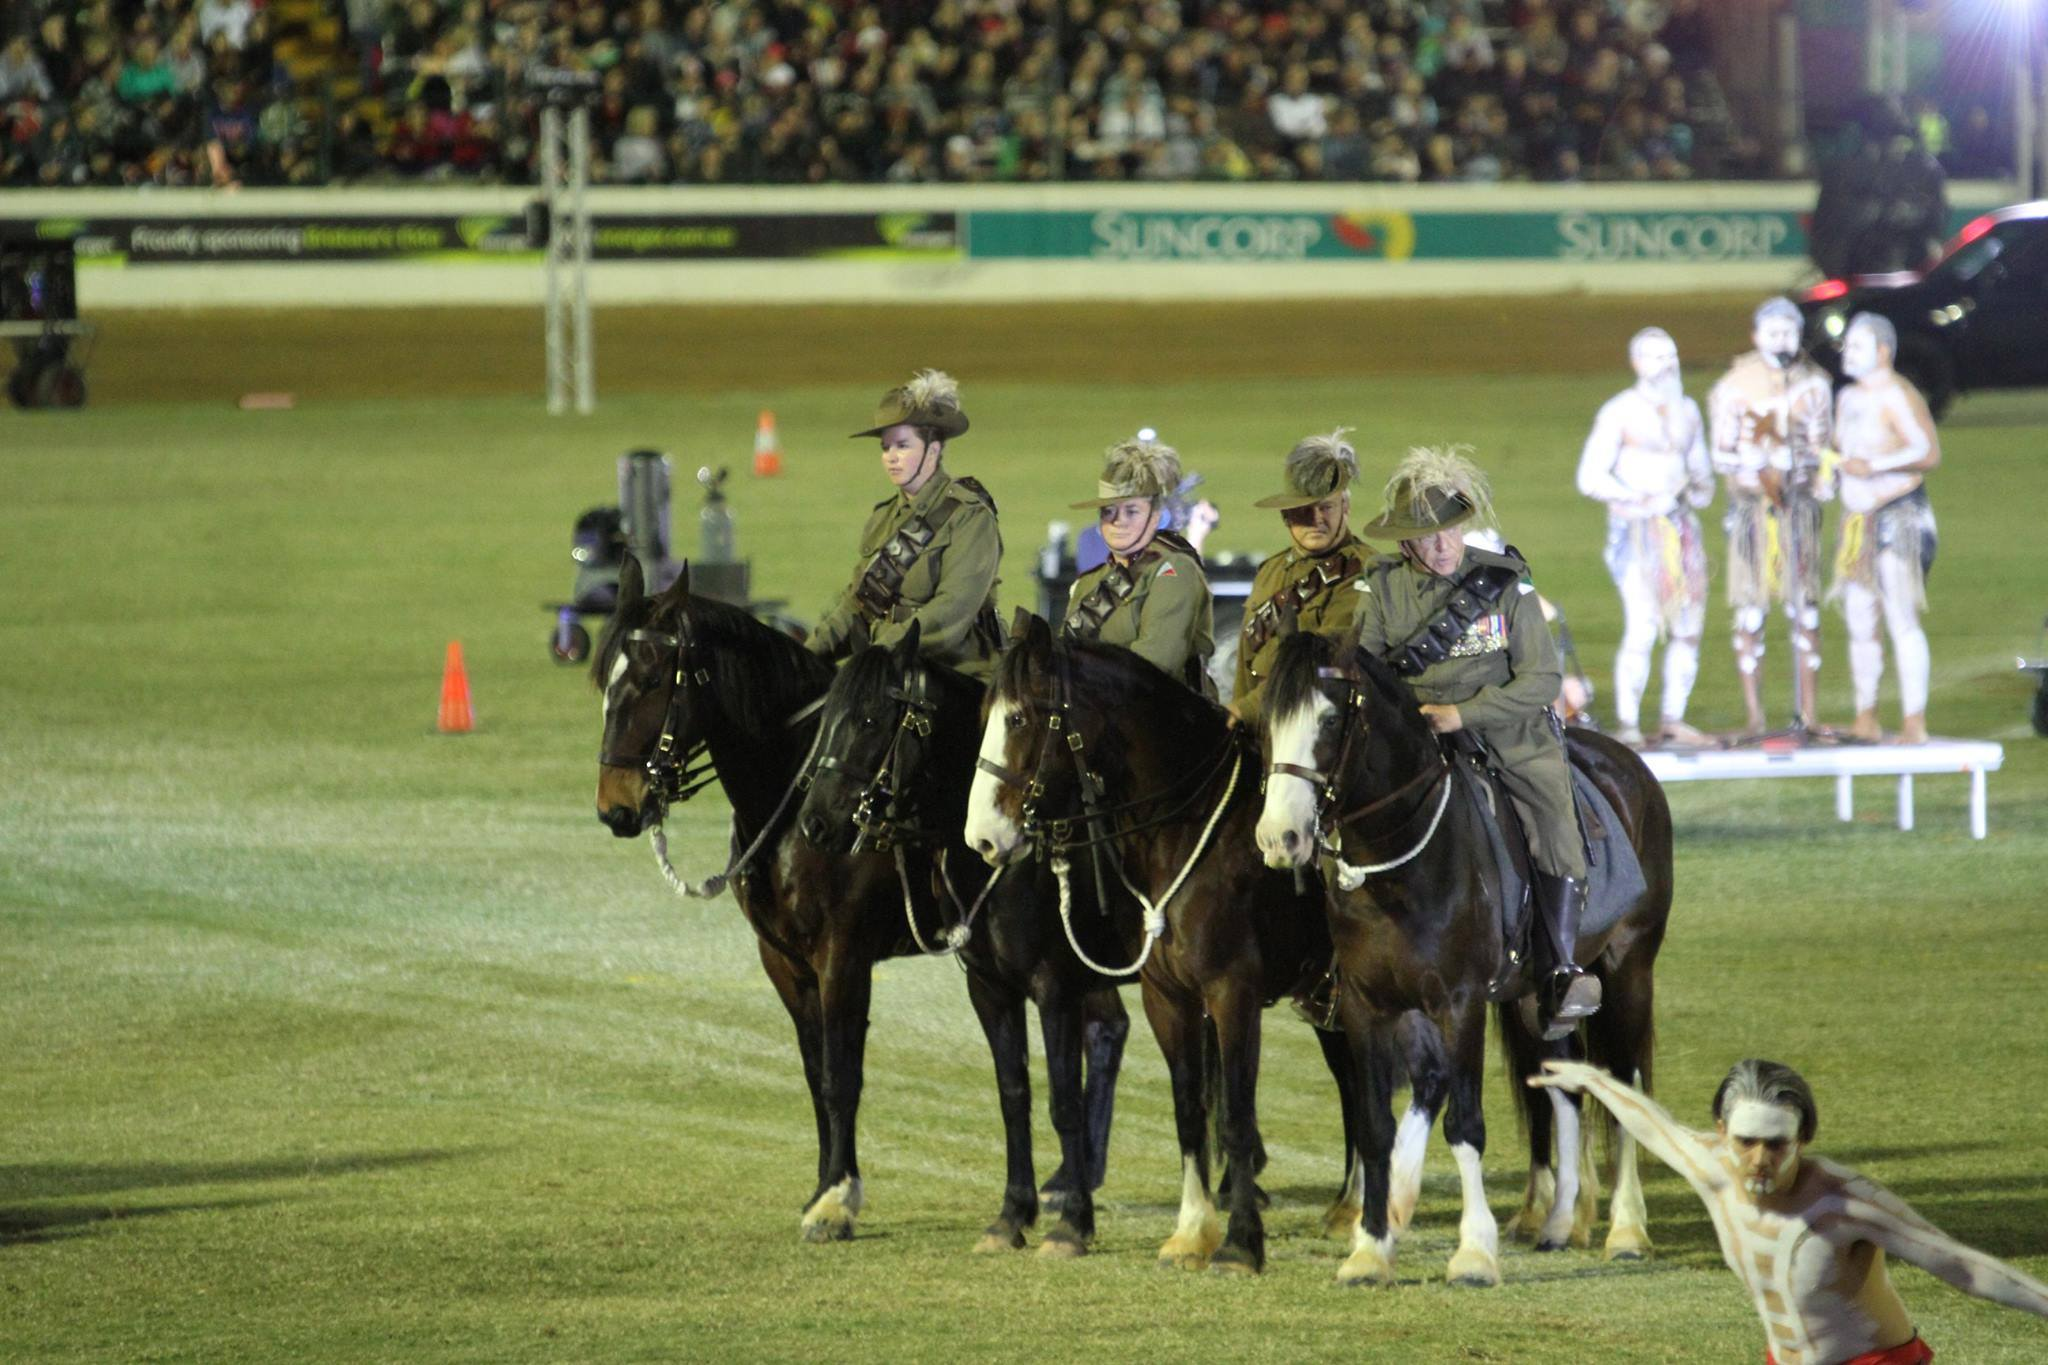 Walers in Lighthorse EKKA Nites 2015